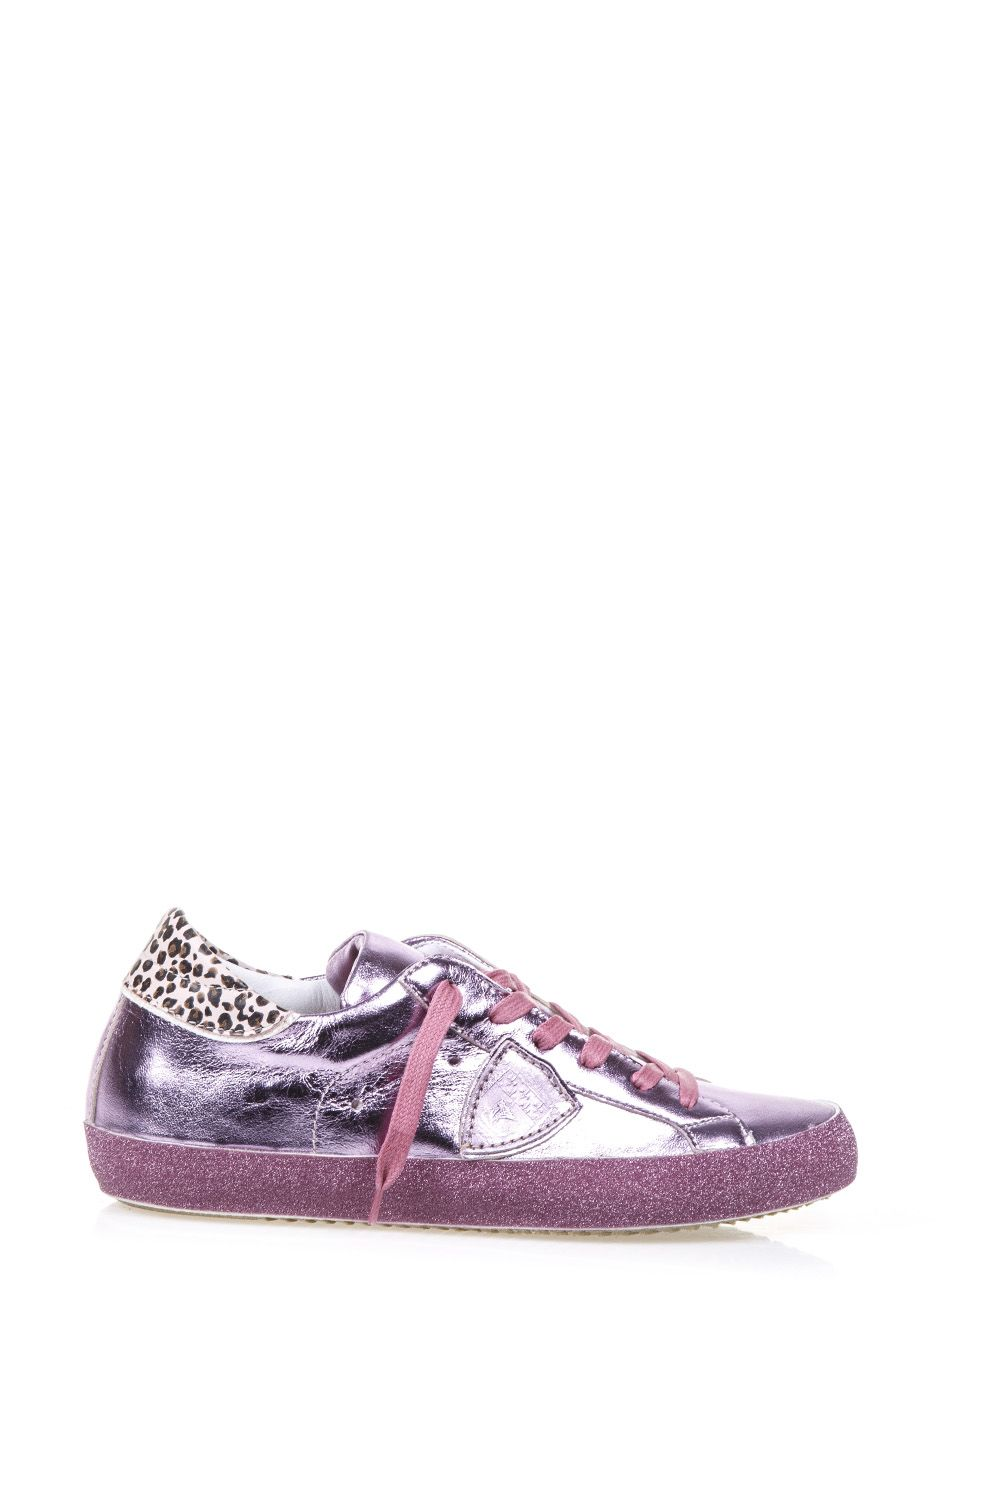 Philippe Model Metallic Sneakers